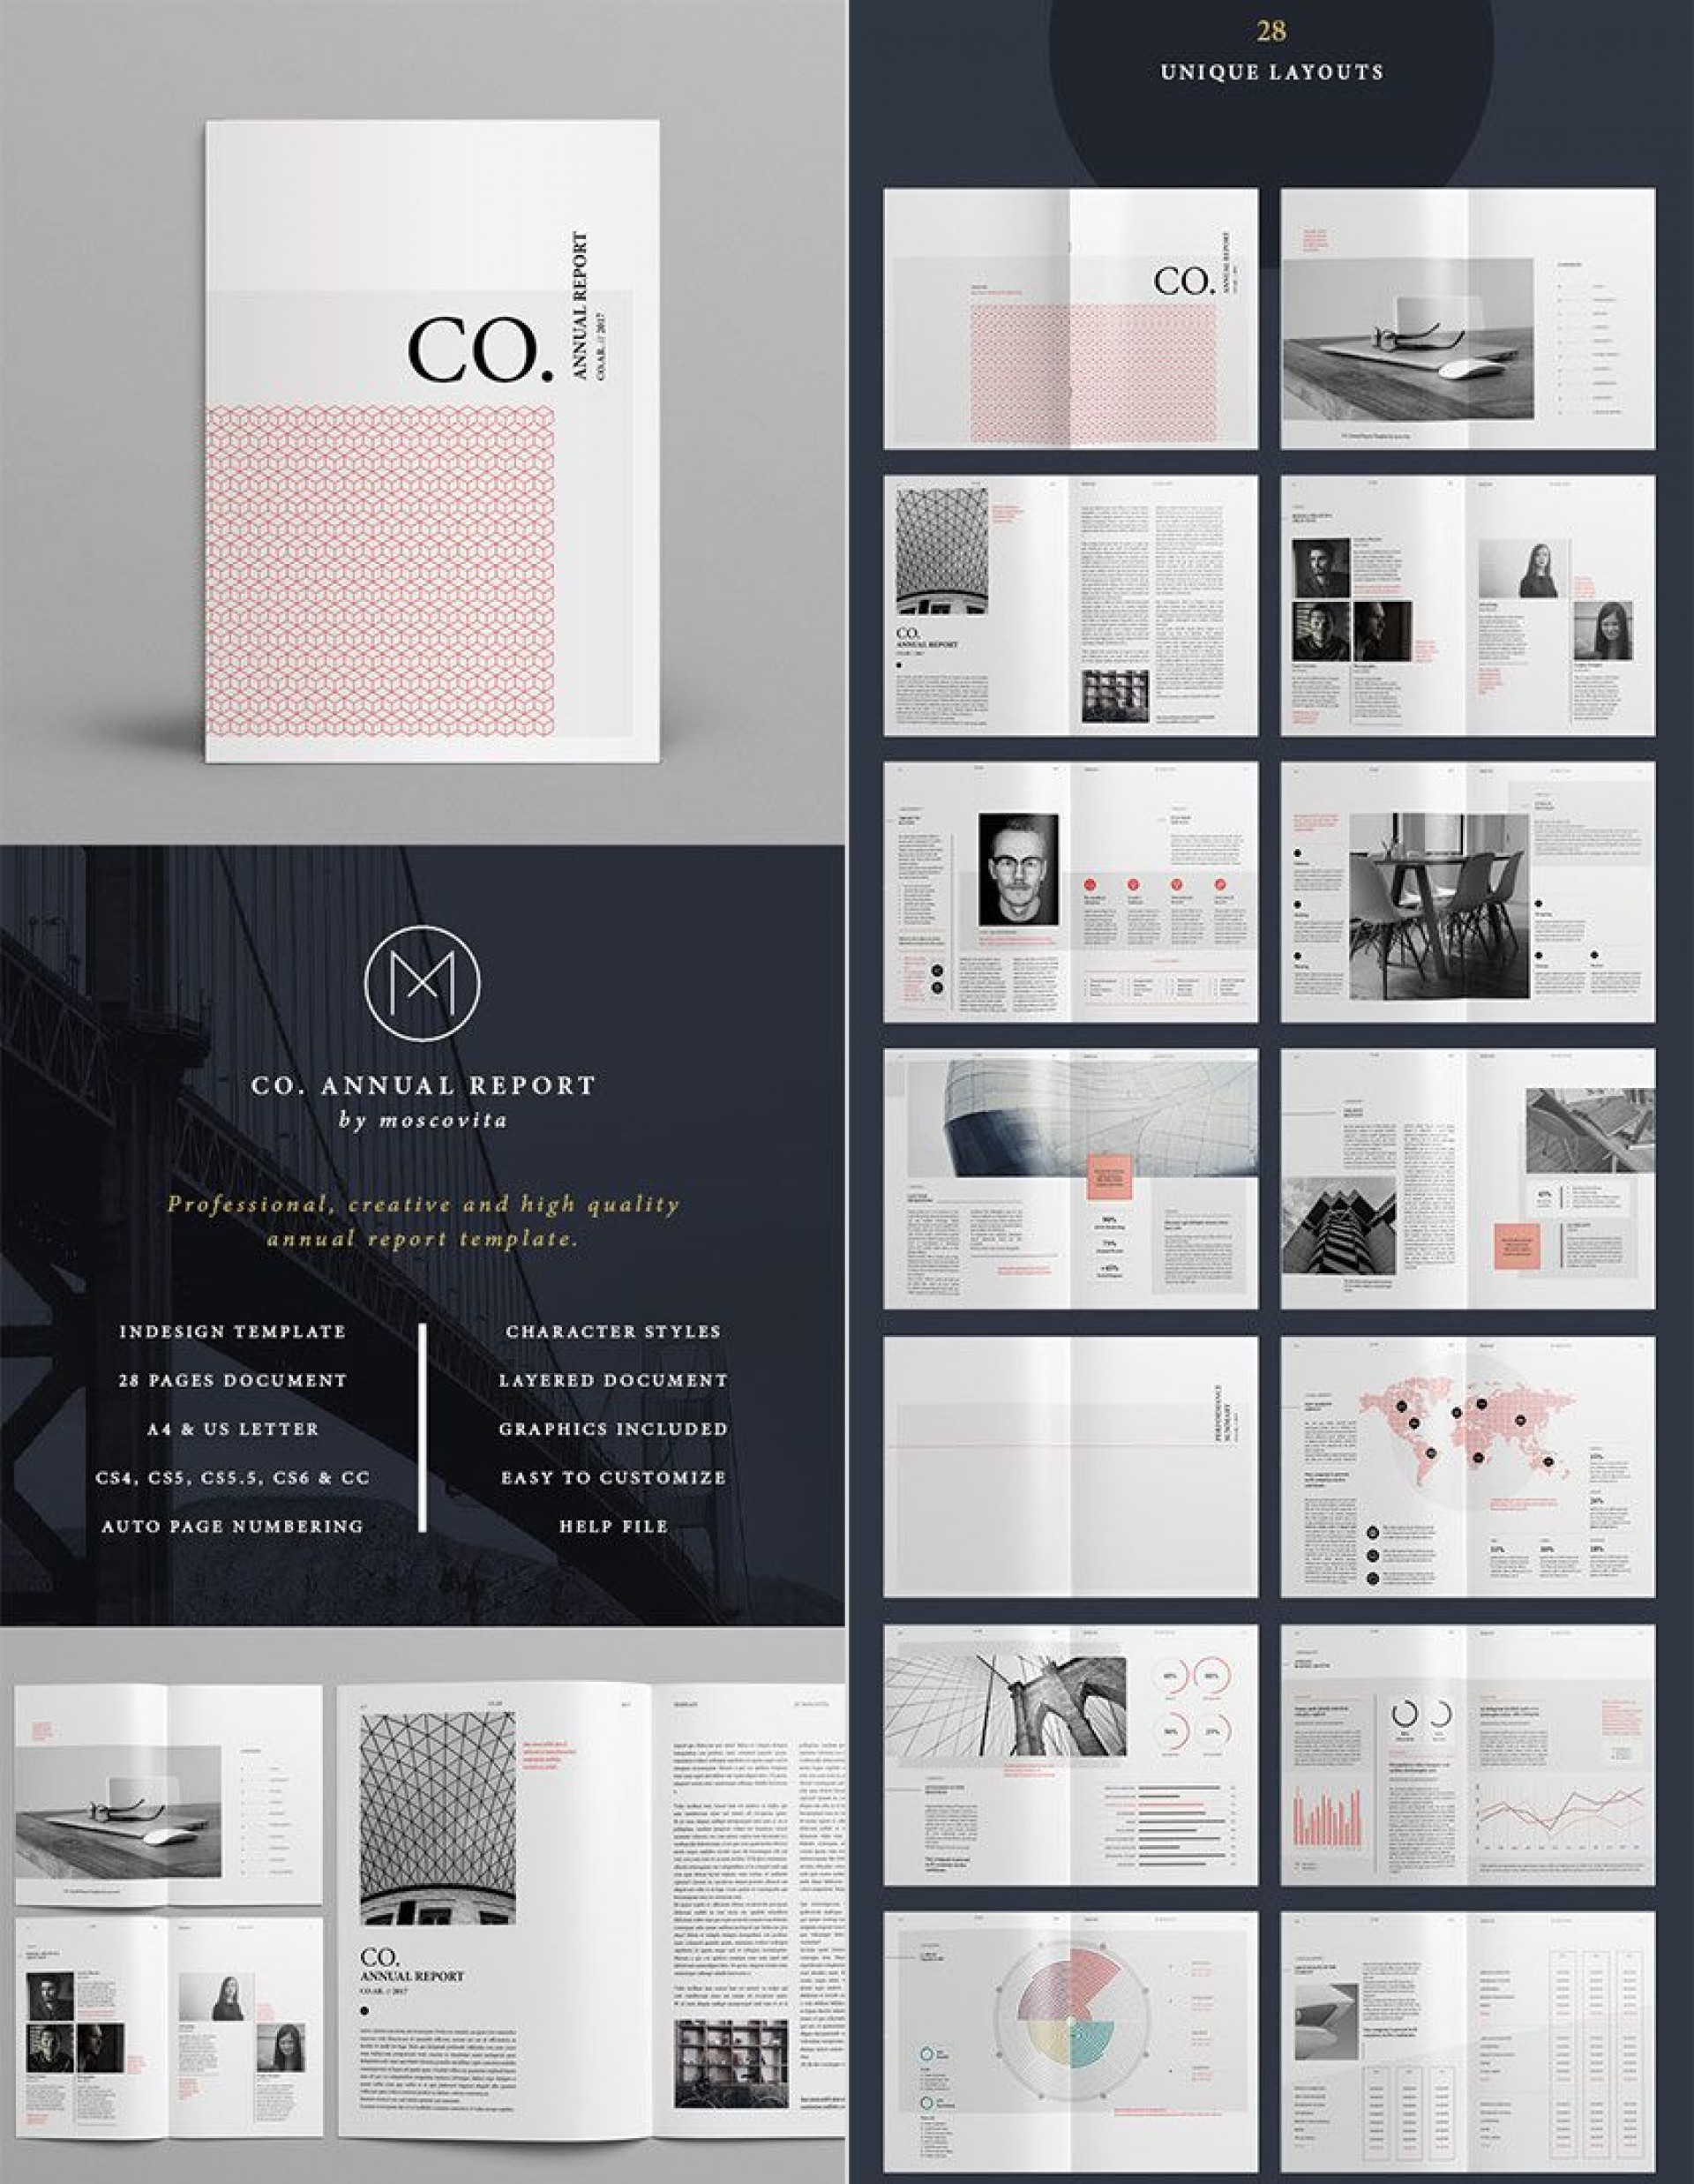 007 Fascinating Annual Report Design Template Indesign Highest Clarity  Free Download1920